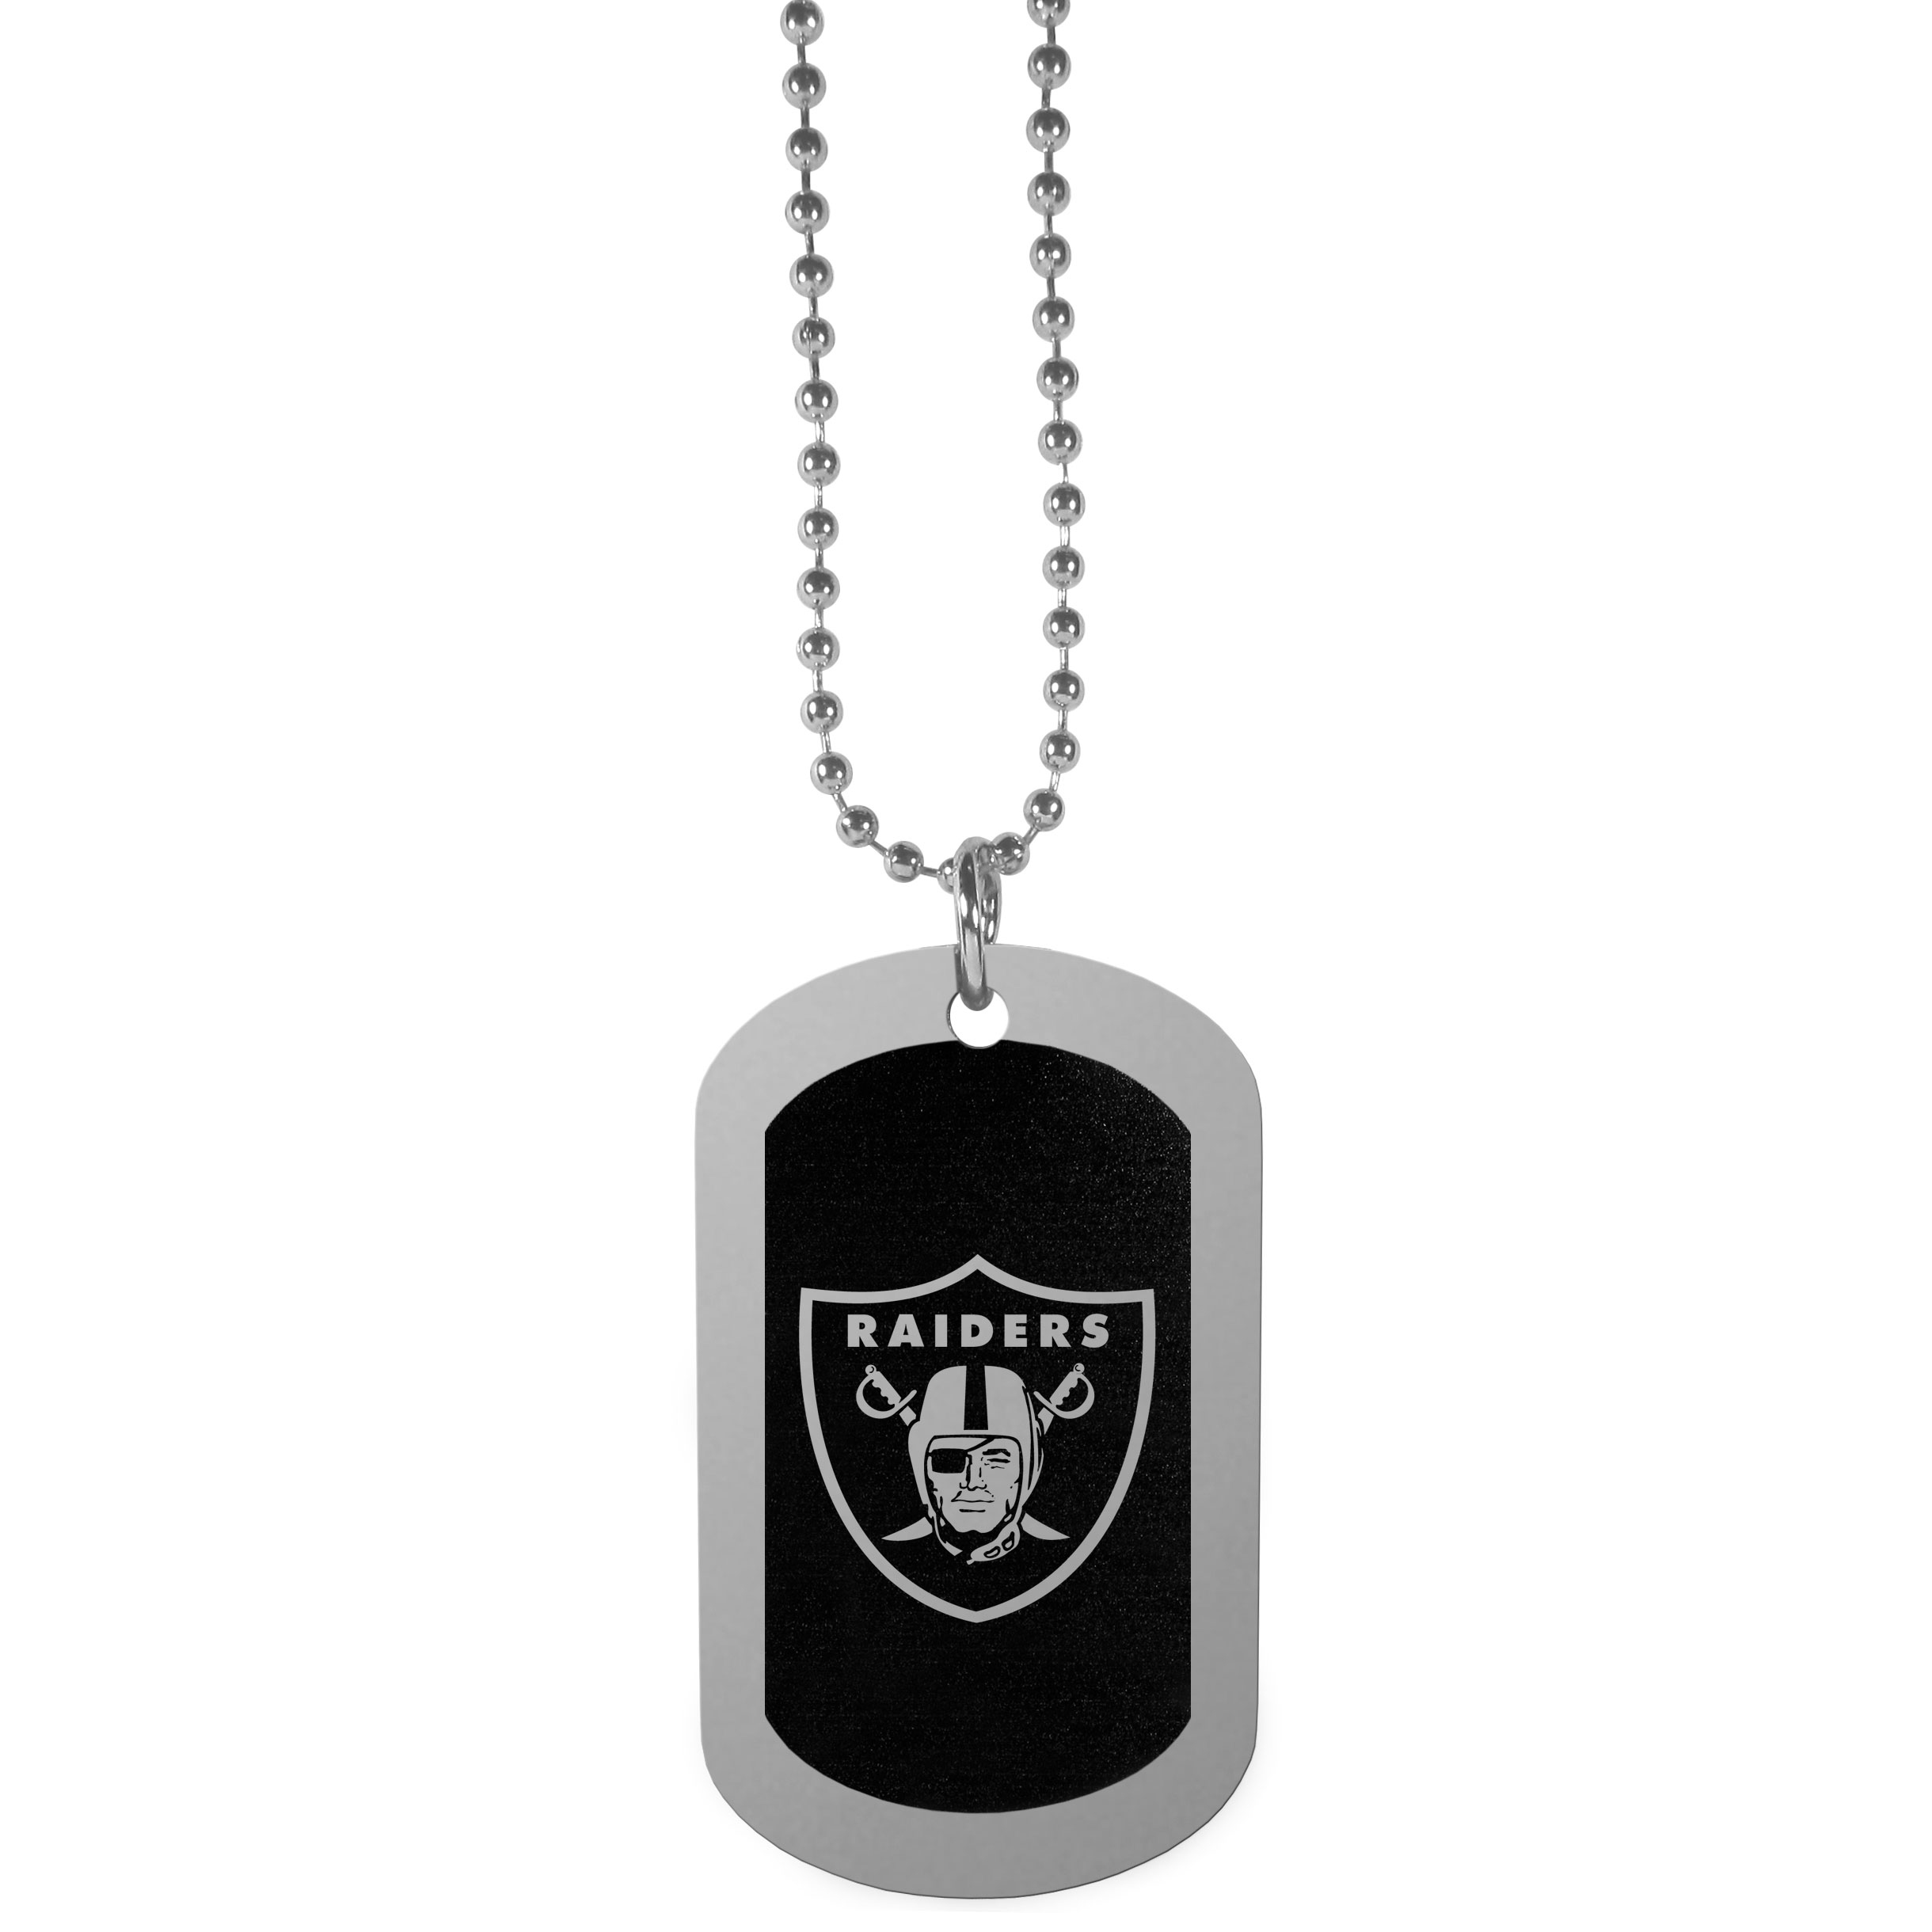 Oakland Raiders Chrome Tag Necklace - Dog tag necklaces are a fashion statement that is here to stay. The sporty version of the classic tag features a black printed over a high polish tag to create a bold and sporty look. The tag comes on a 26 inch ball chain with a ball and joint clasp. Any Oakland Raiders would be proud to wear this attractive fashion accessory.